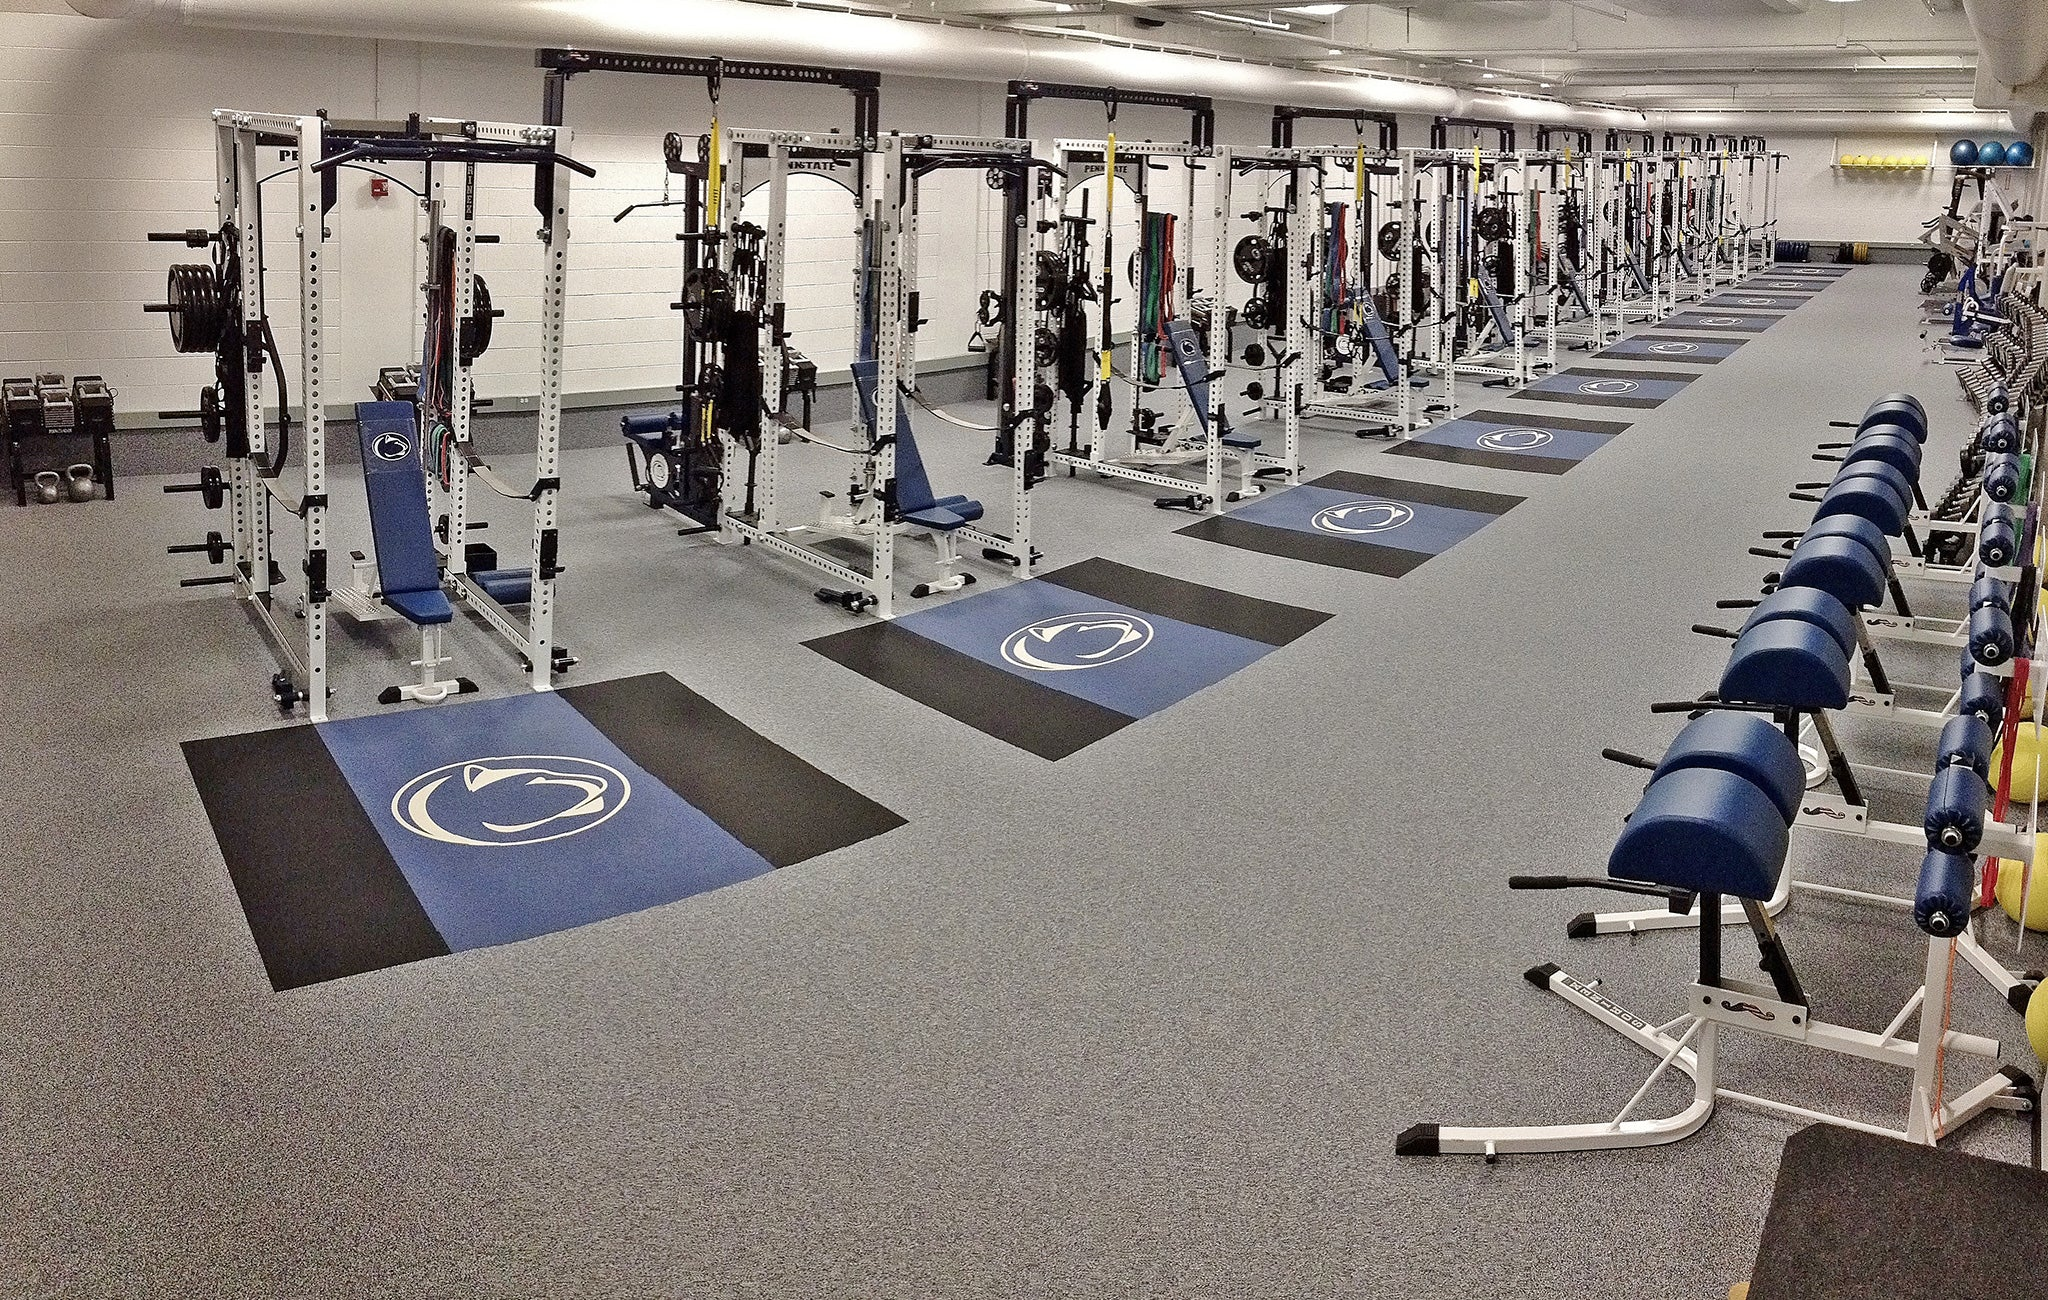 Penn State Wrestling Weight Room